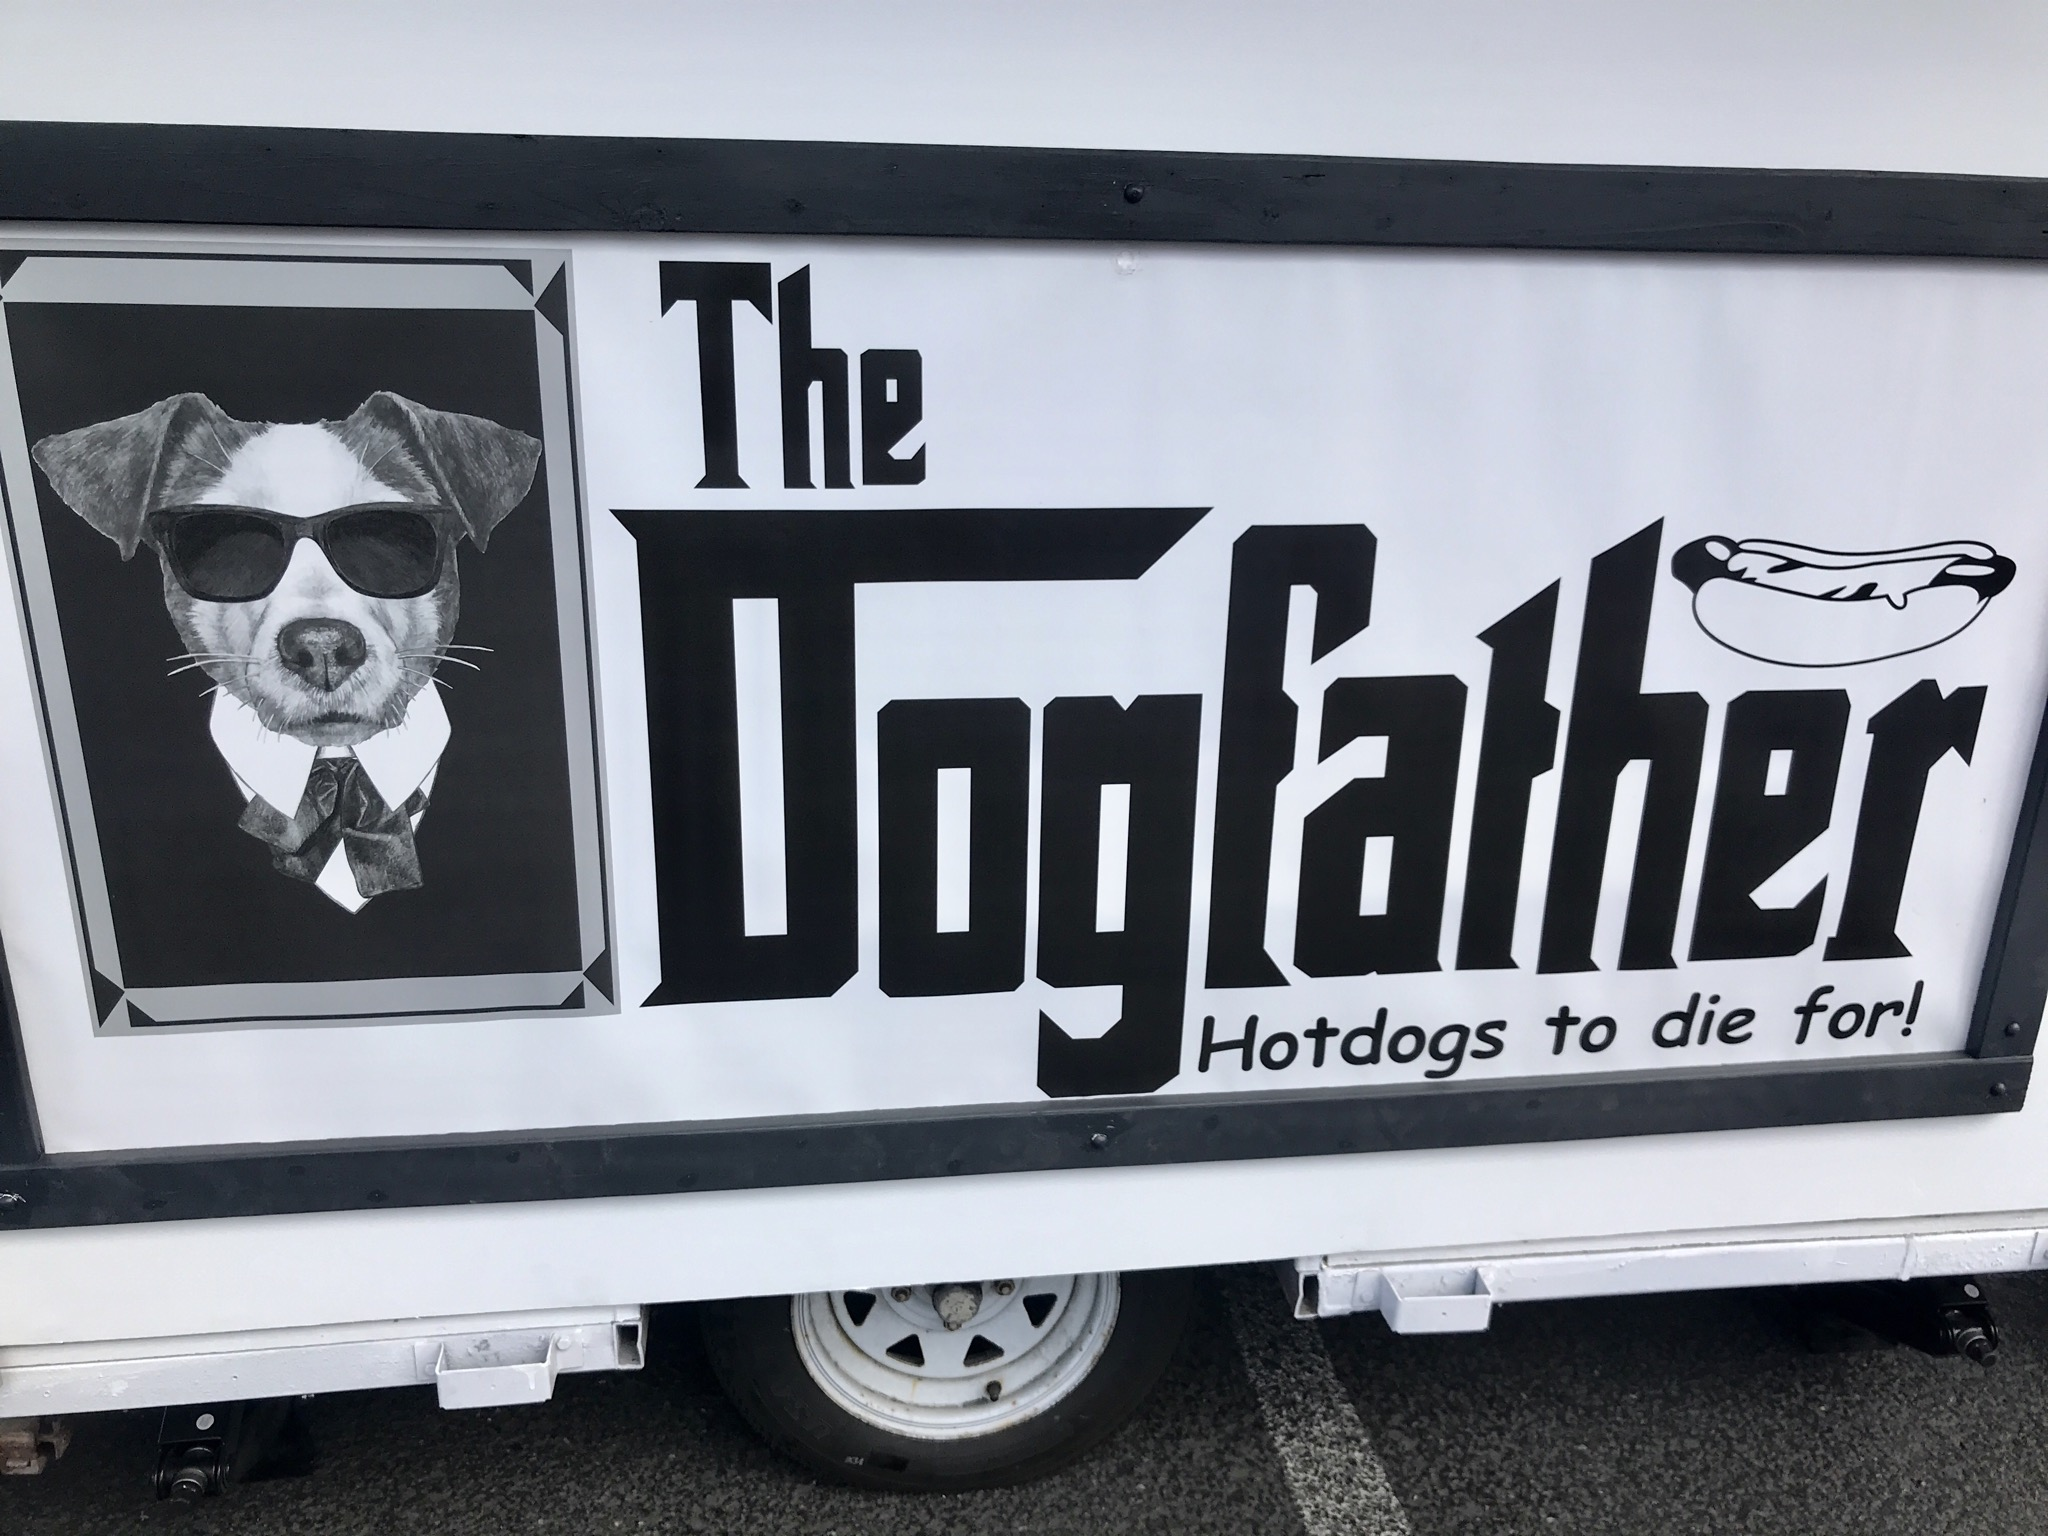 Hot Dogs at the Dogfather Hot Dog Cart in Kennewick – April 18 2020